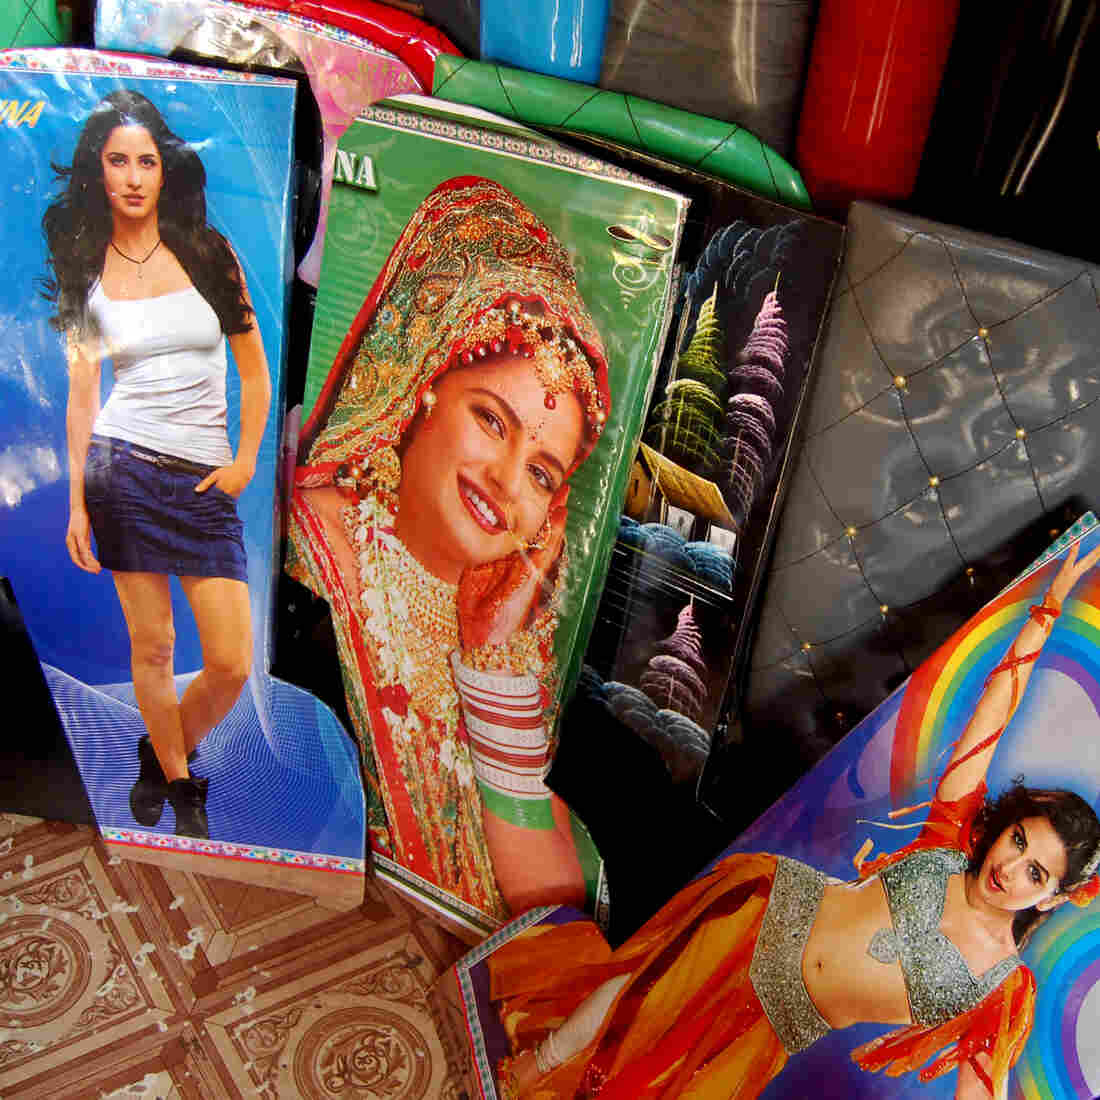 You know you want one: rickshaw seat covers emblazoned with Bollywood stars. It's just one way New Delhi rickshaw drivers are trying to outdo each other in the battle for passengers.